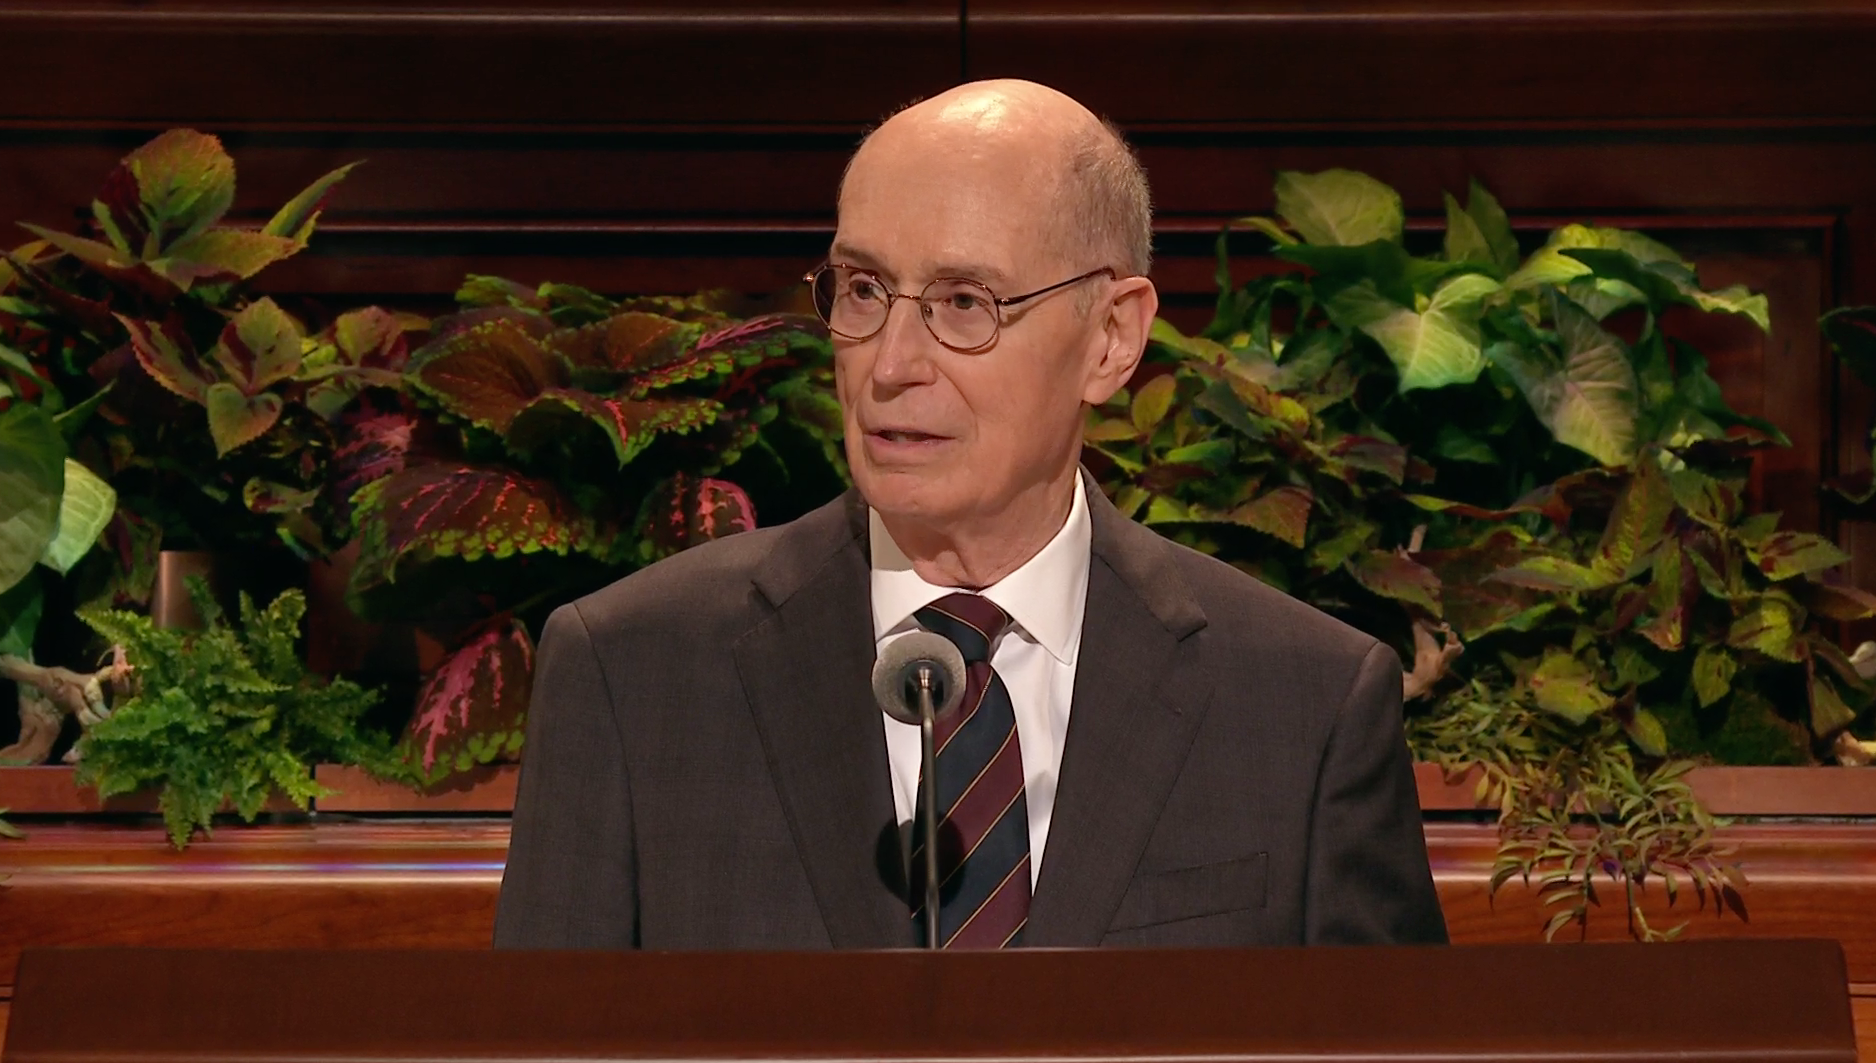 President Henry B. Eyring, second counselor in the First Presidency, speaks during the general women's session in the 189th Semiannual General Conference of the Church on Oct. 5, 2019.